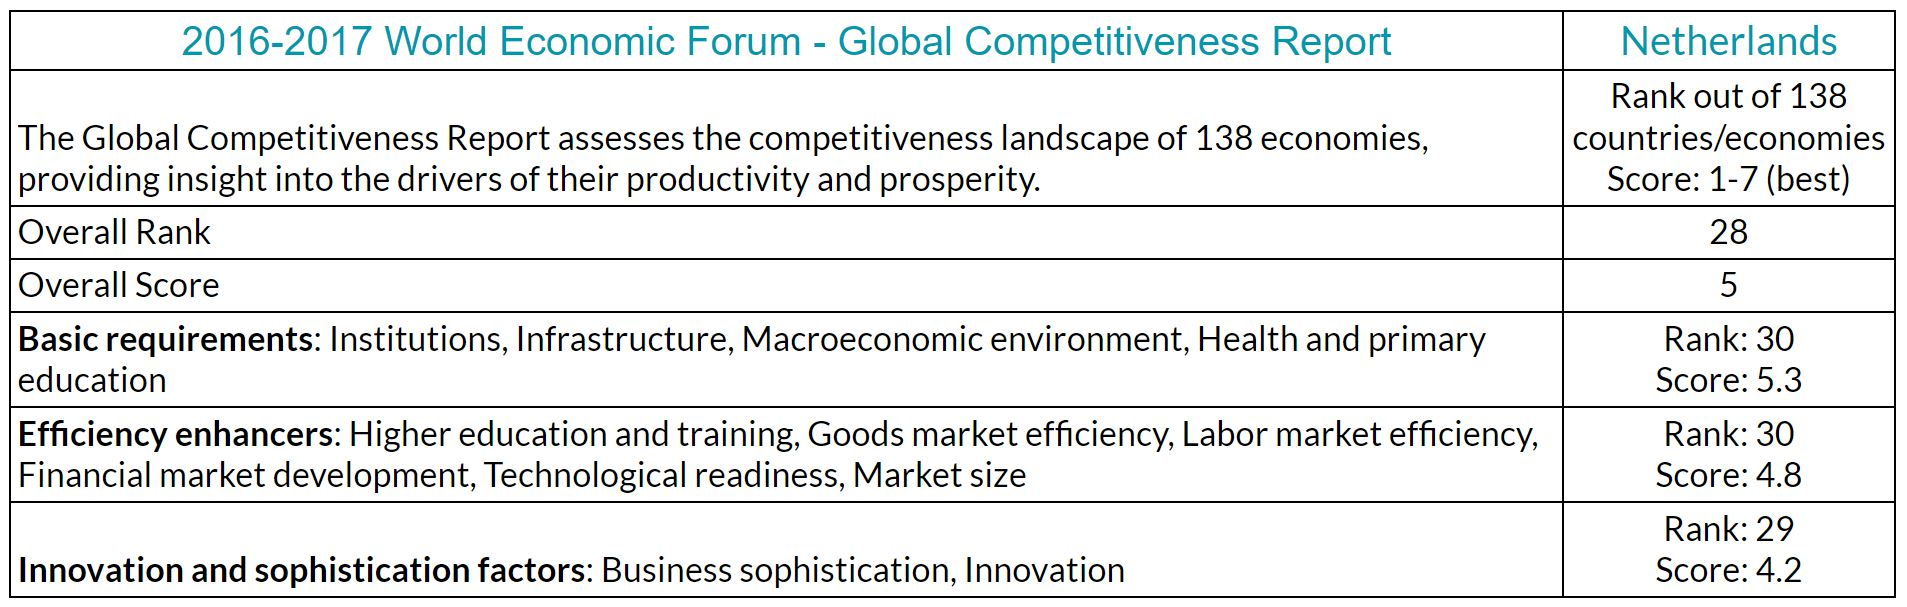 World Economic Forum Global Competitiveness Report - stats for Netherlands